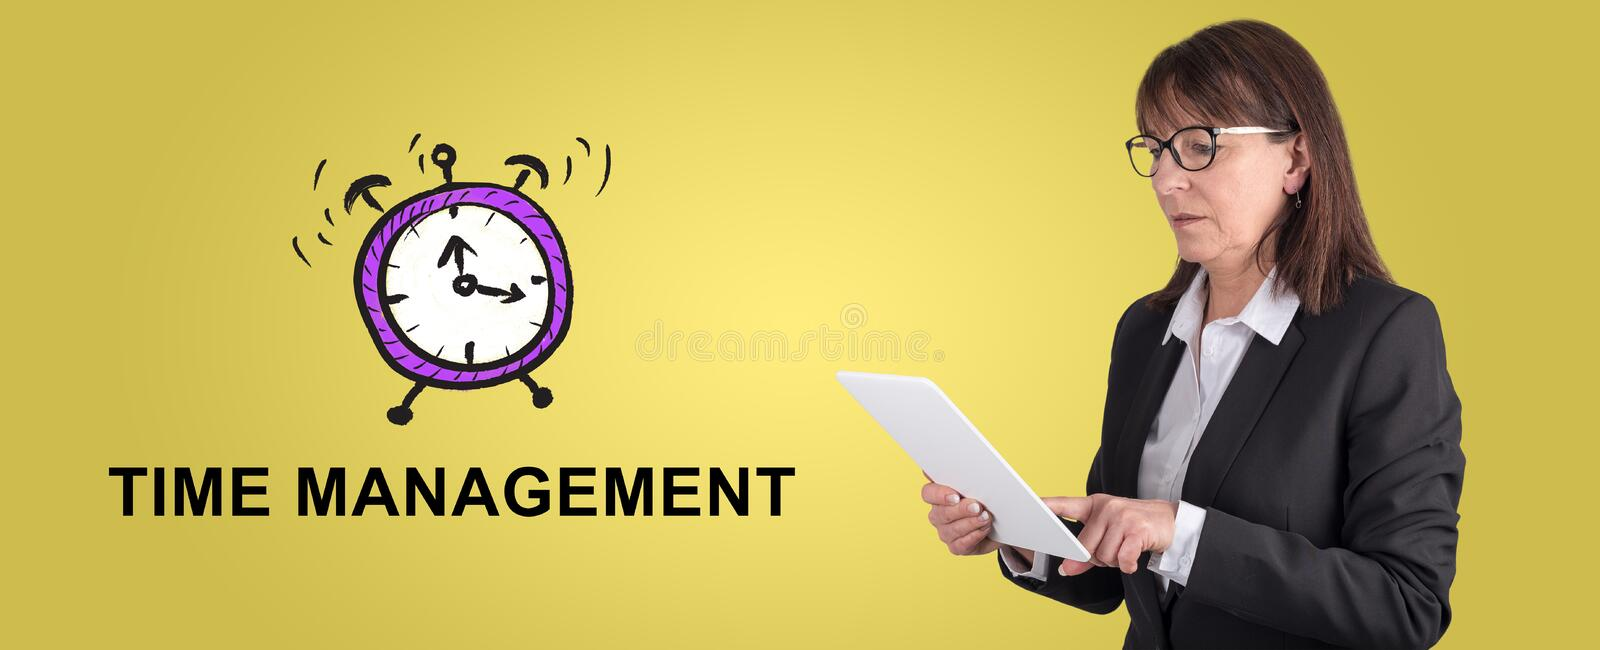 Concept of time management stock images